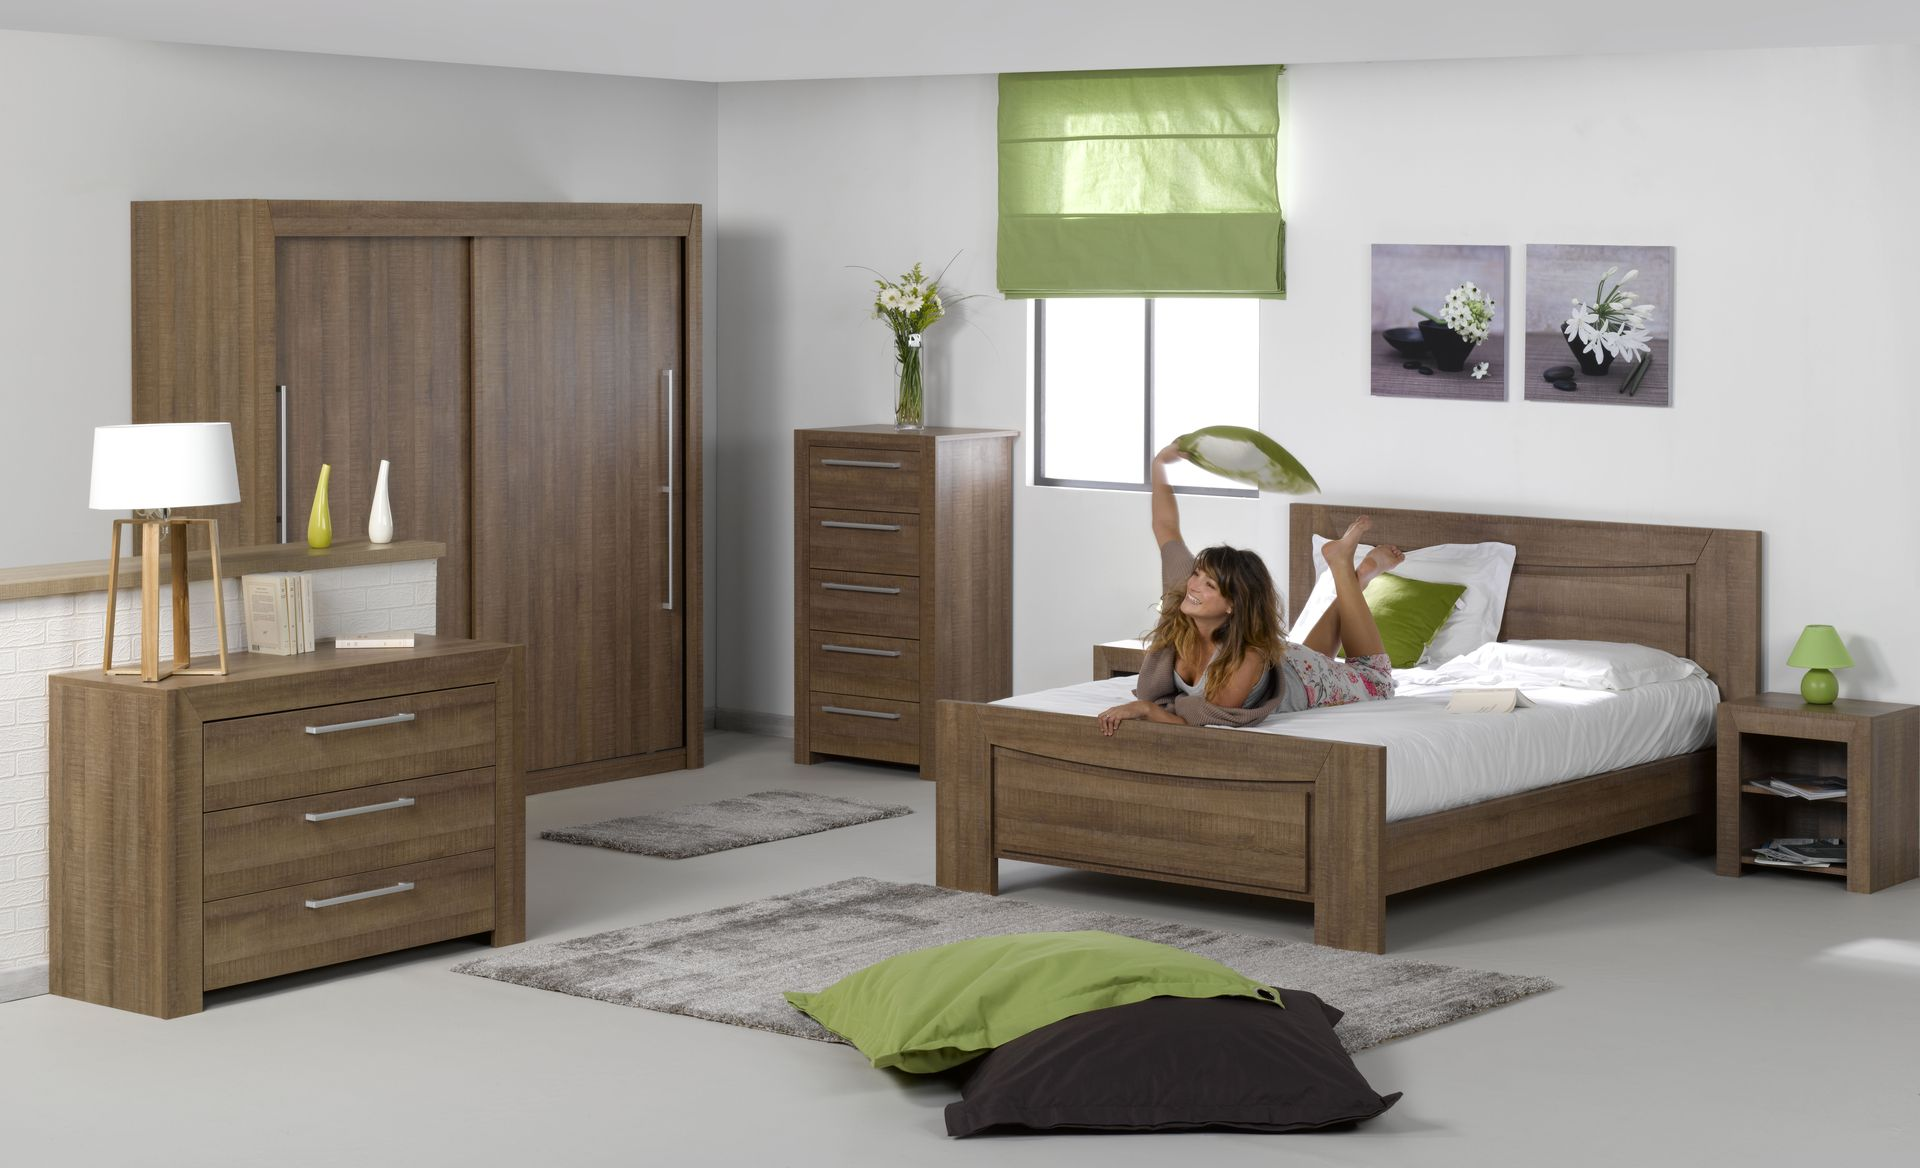 comment decorer chambre a coucher. Black Bedroom Furniture Sets. Home Design Ideas